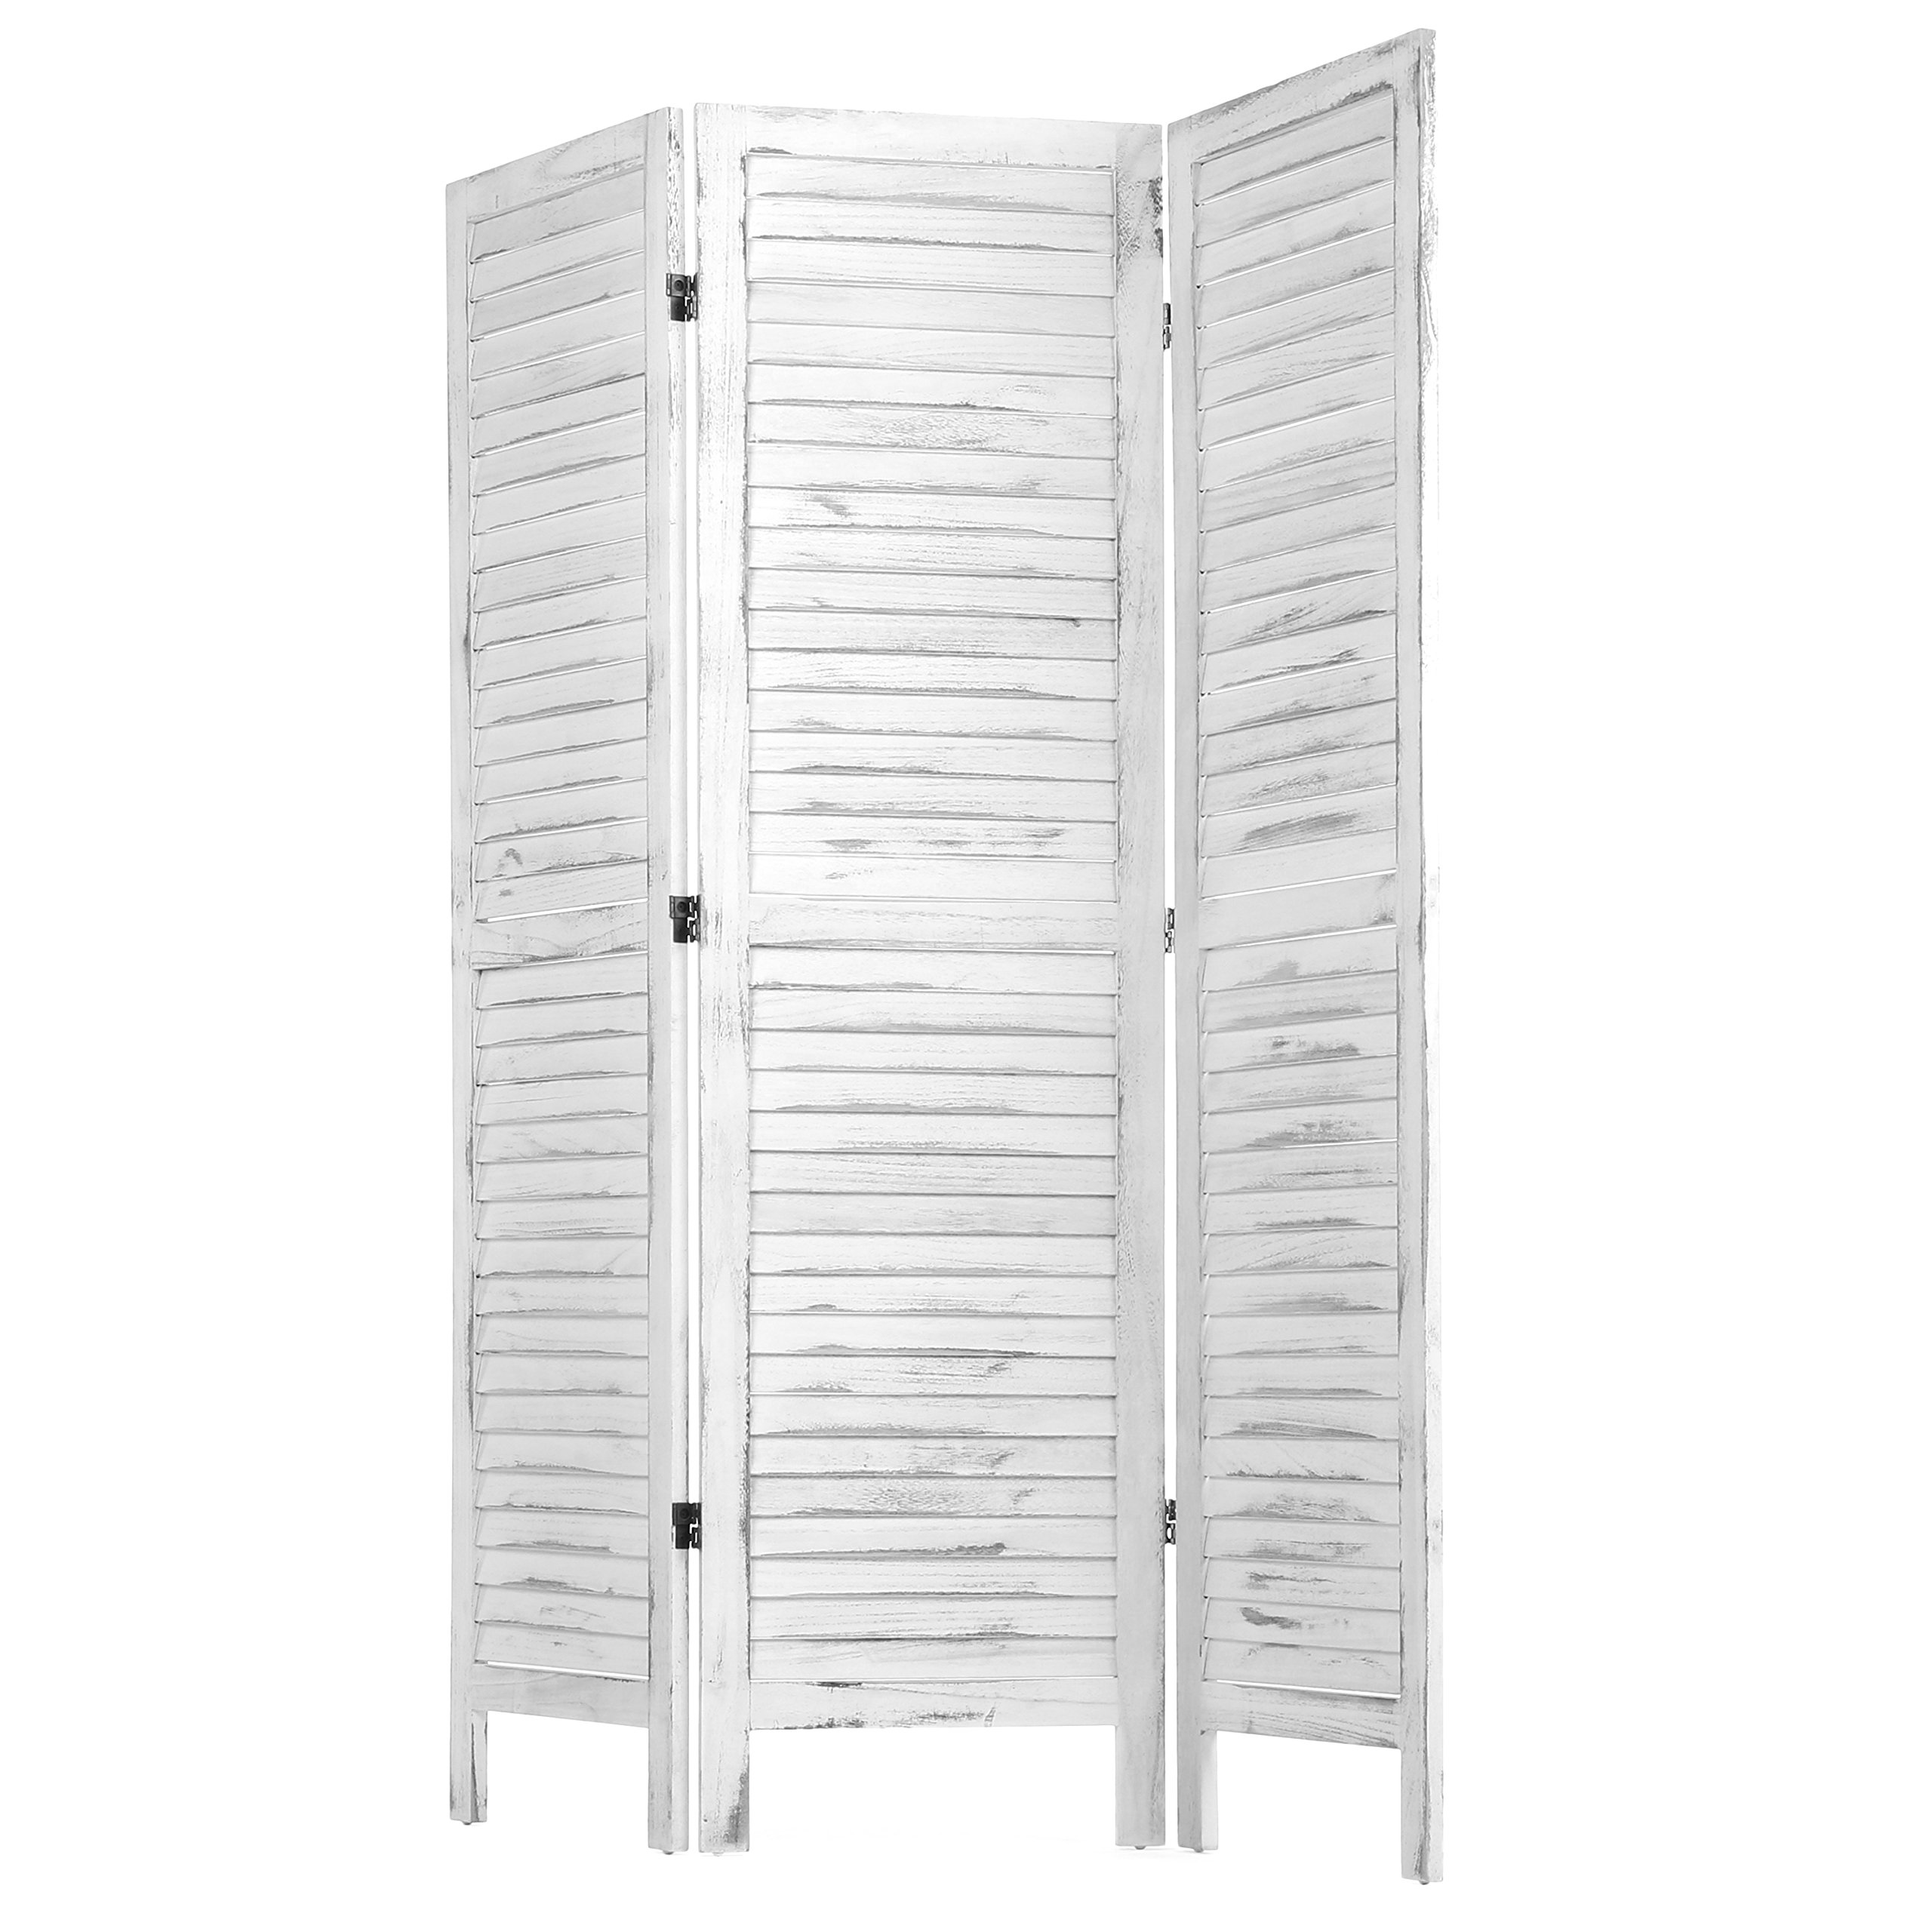 MyGift Whitewashed Wood 3 Panel Screen, Folding Louvered Room Divider by MyGift (Image #4)